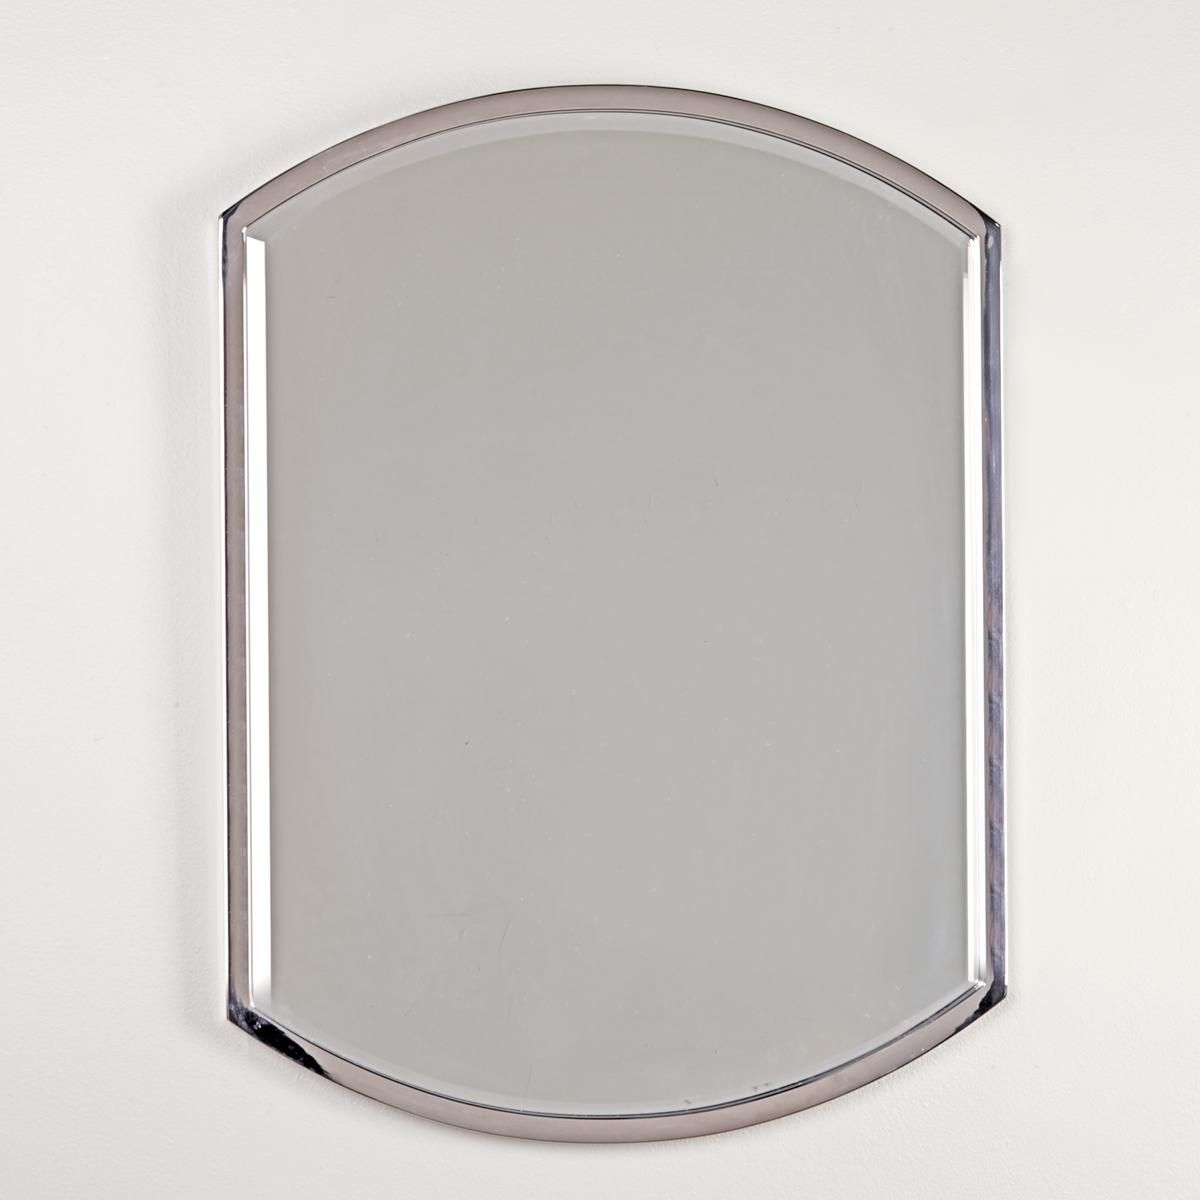 Arched Top And Bottom Mirror Bathroom Pinterest Arch And Chrome